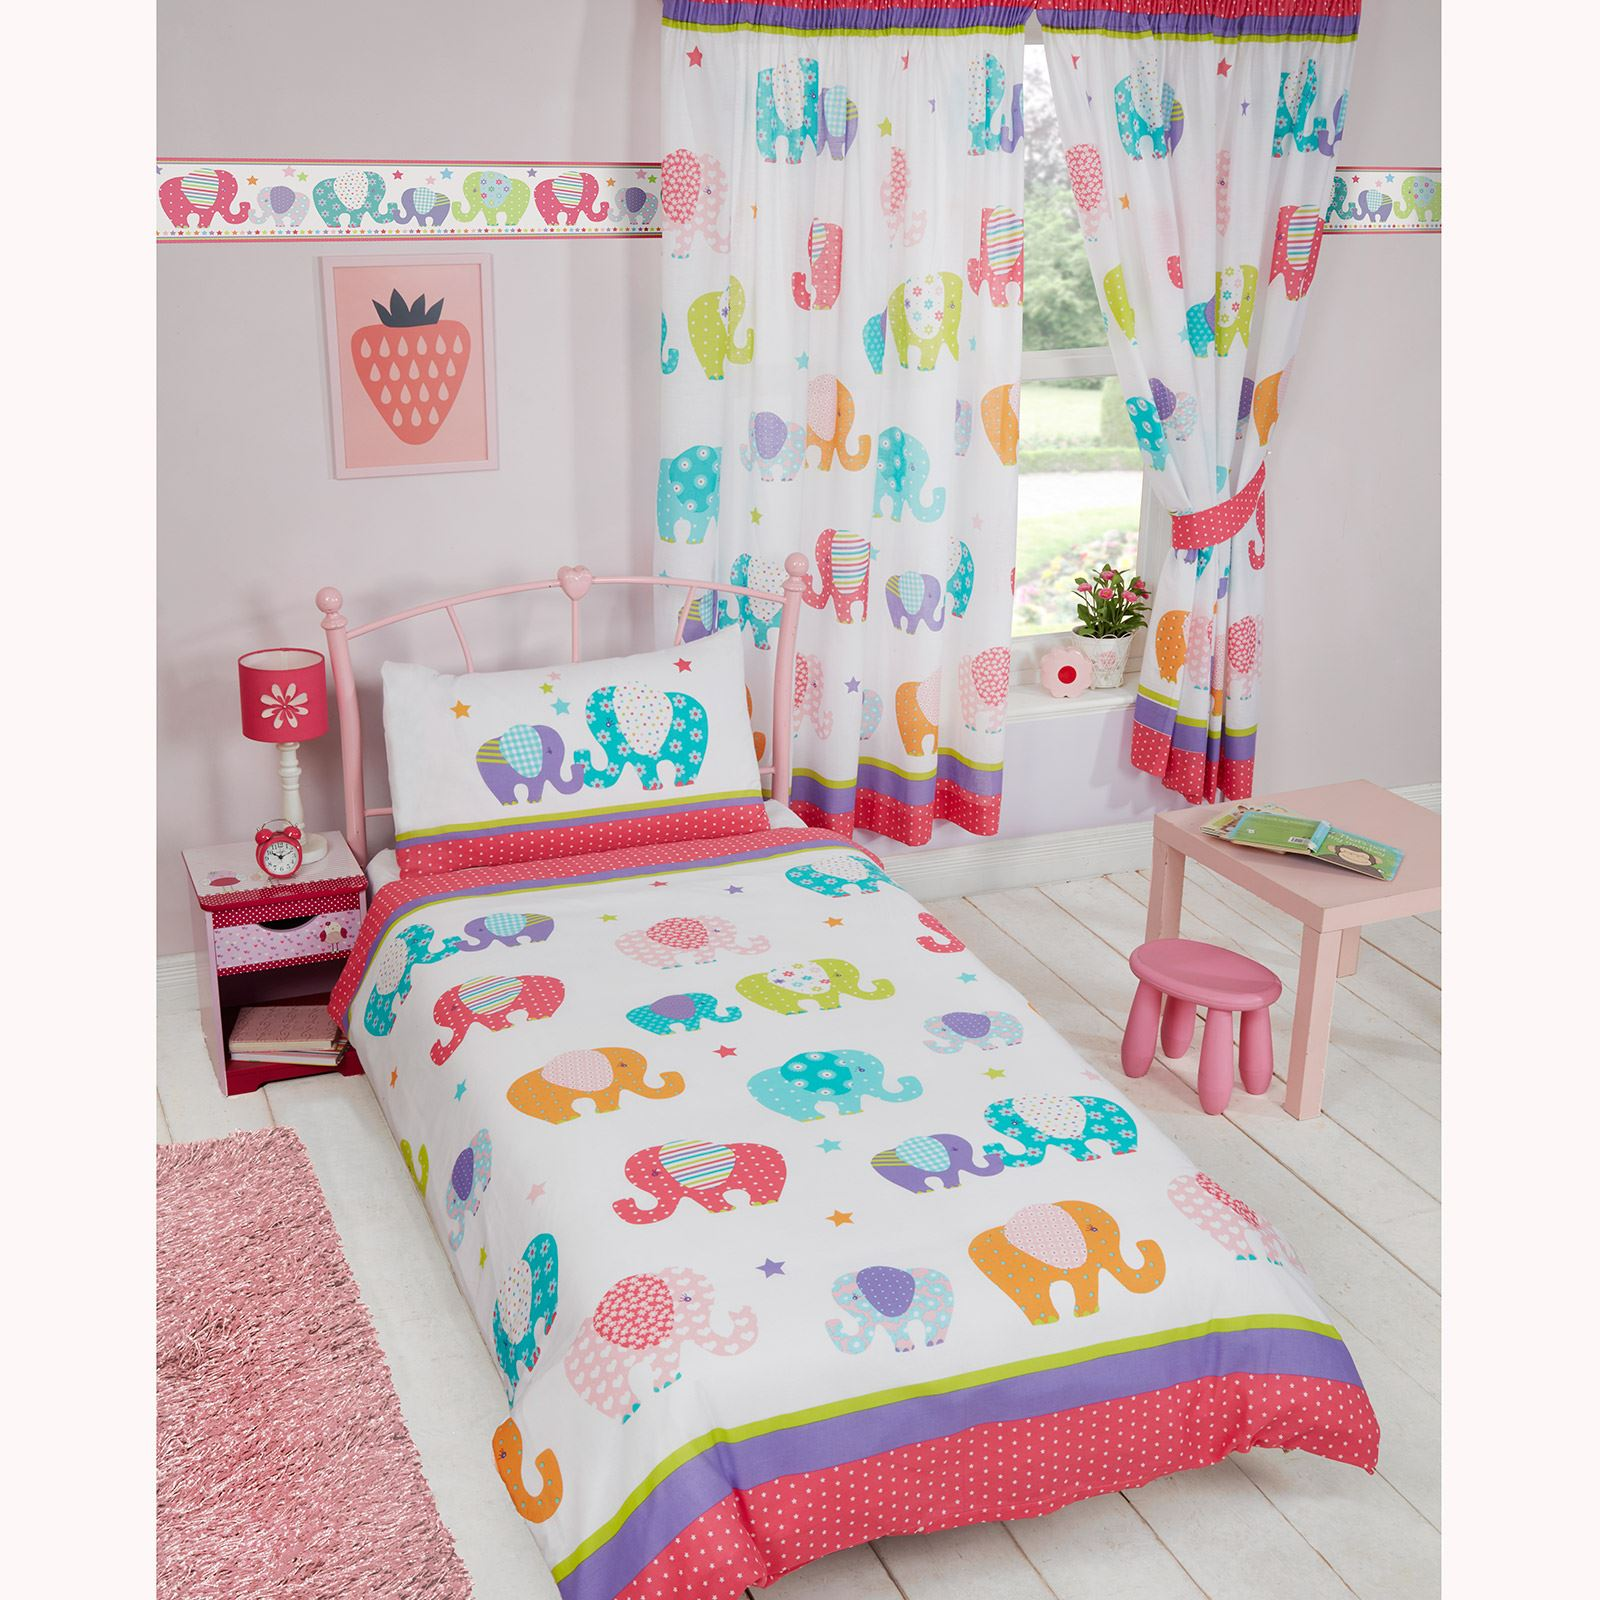 CHILDRENS MATCHING DUVET COVER SETS CURTAINS WALLPAPER BORDERS ...